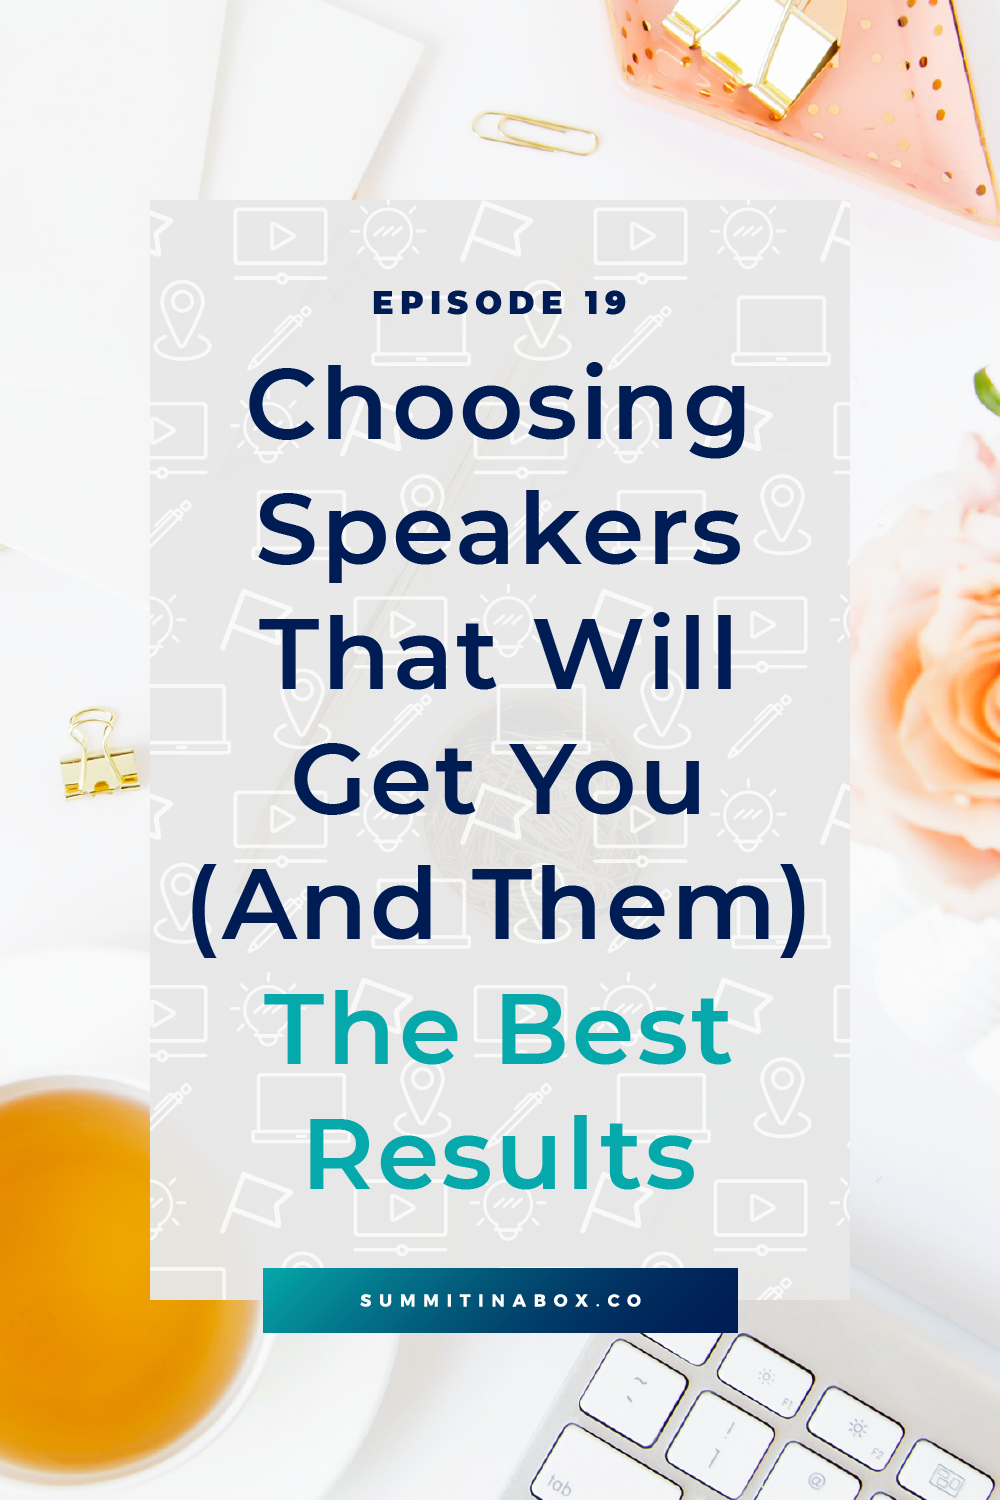 Not every speaker is a good fit. Here are the keys to choosing speakers for your virtual summit who will provide value and bring extra attendees themselves.